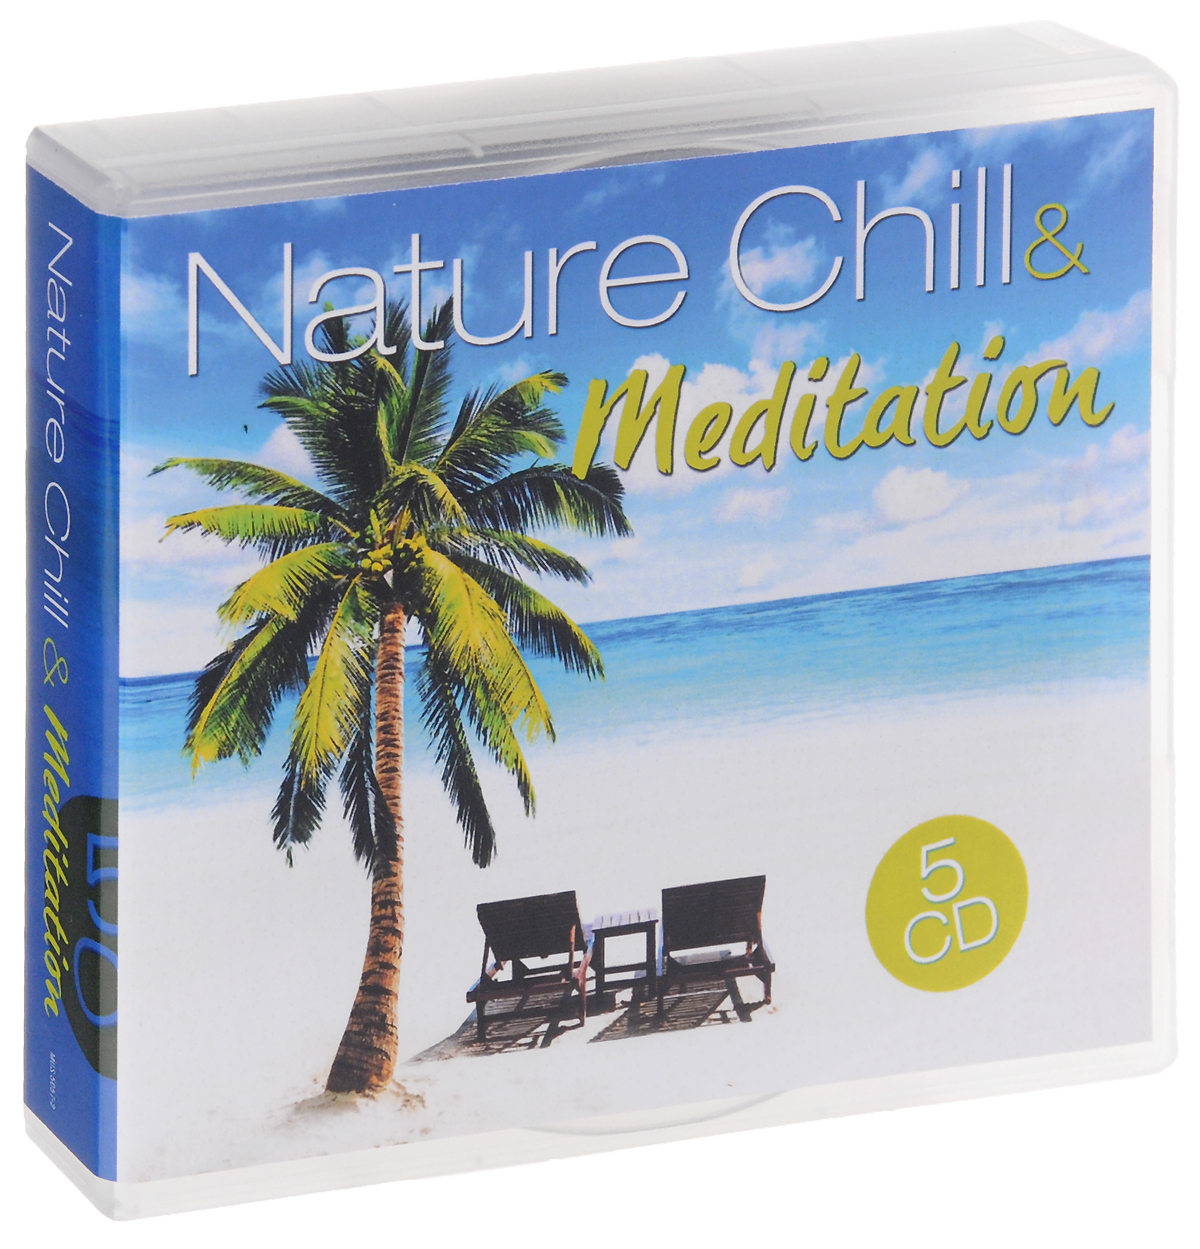 Nature Chill & Meditation (5 CD)